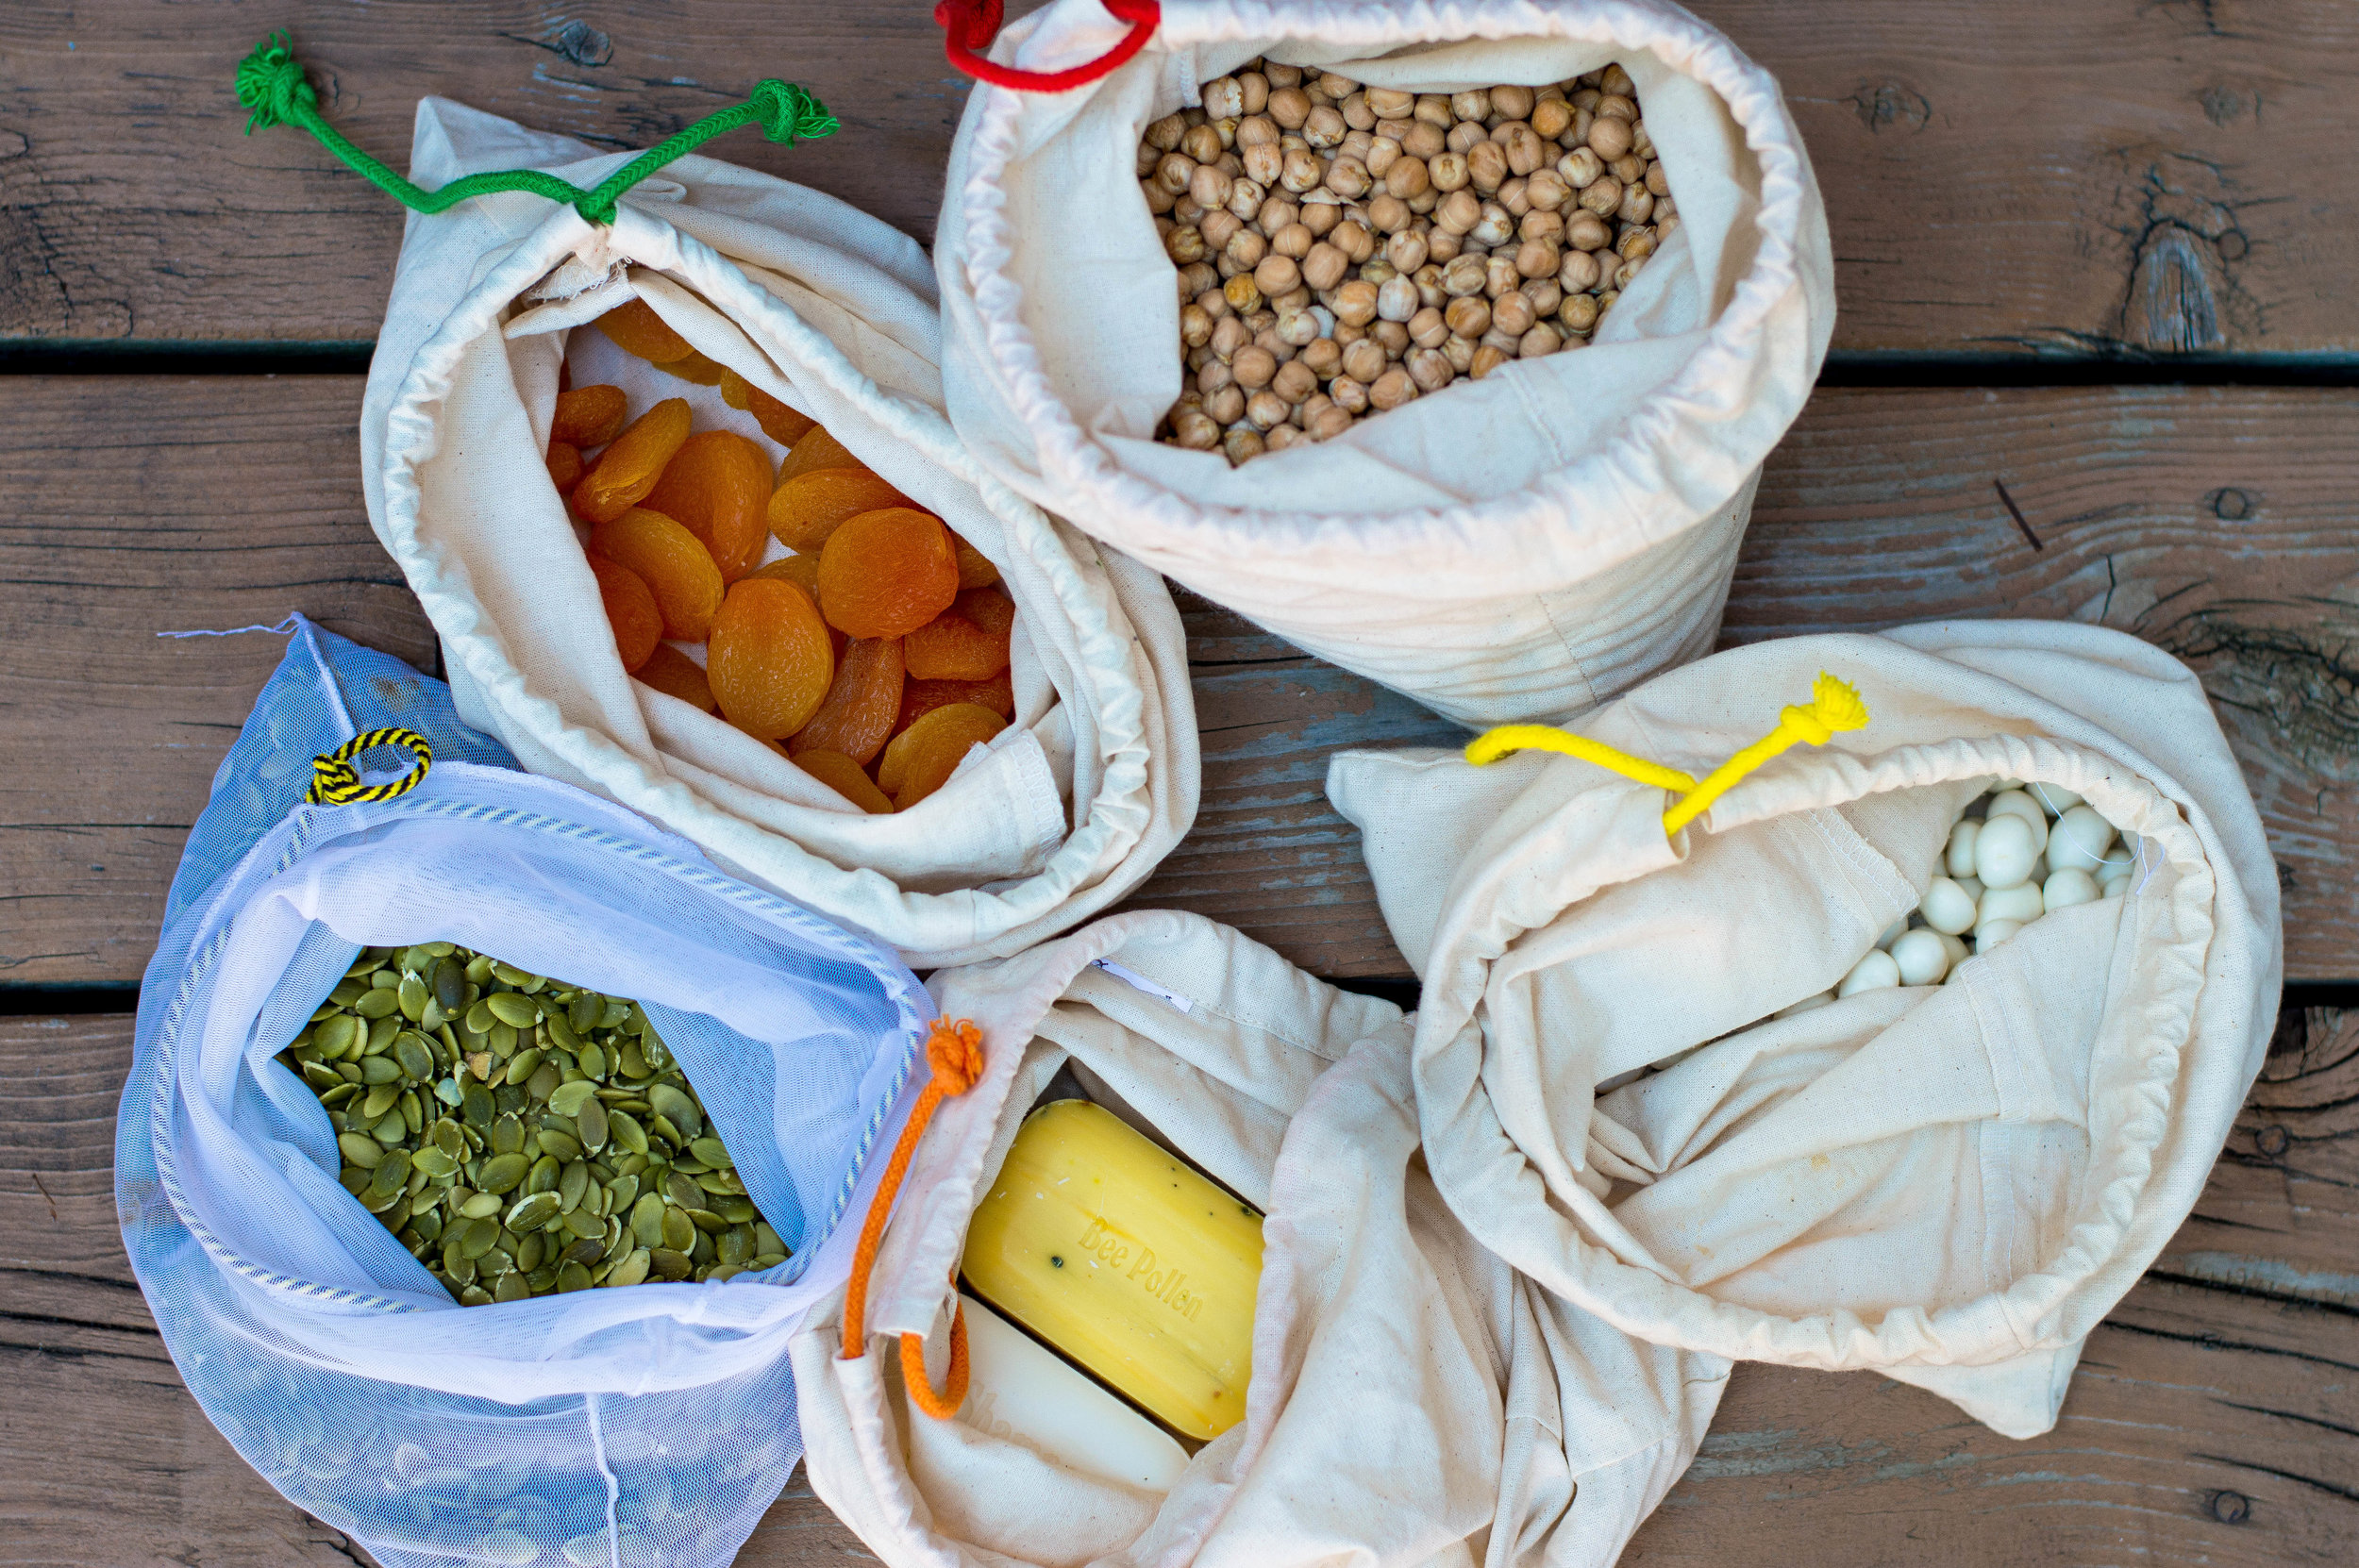 A beginners guide to zero waste living for busy mums using Cloth Bags for food